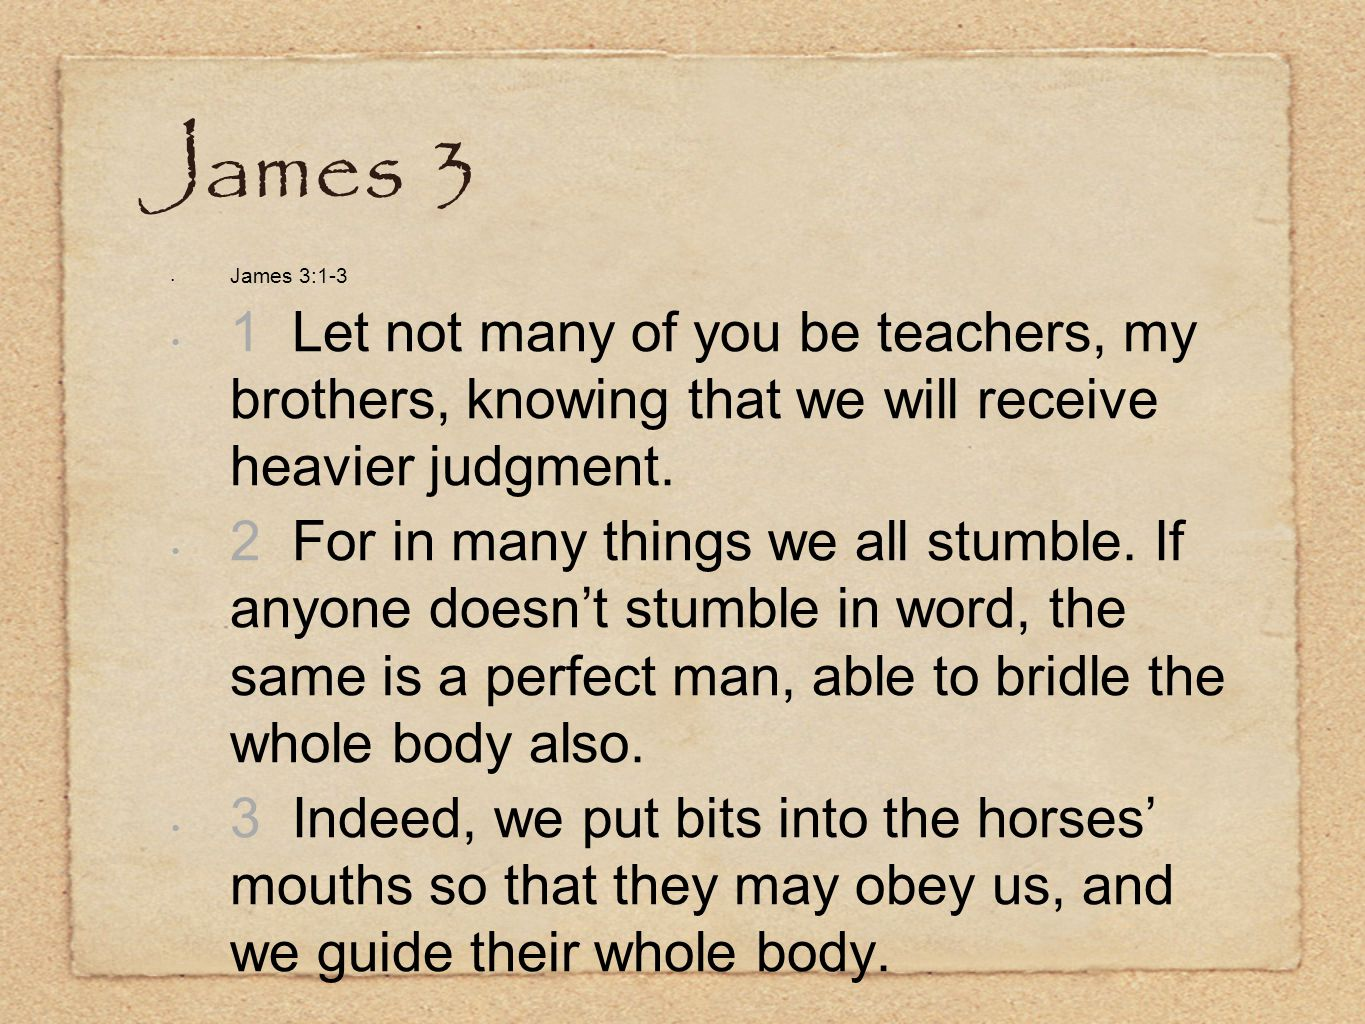 James 3 James 3:1-3 1 Let not many of you be teachers, my brothers, knowing that we will receive heavier judgment.